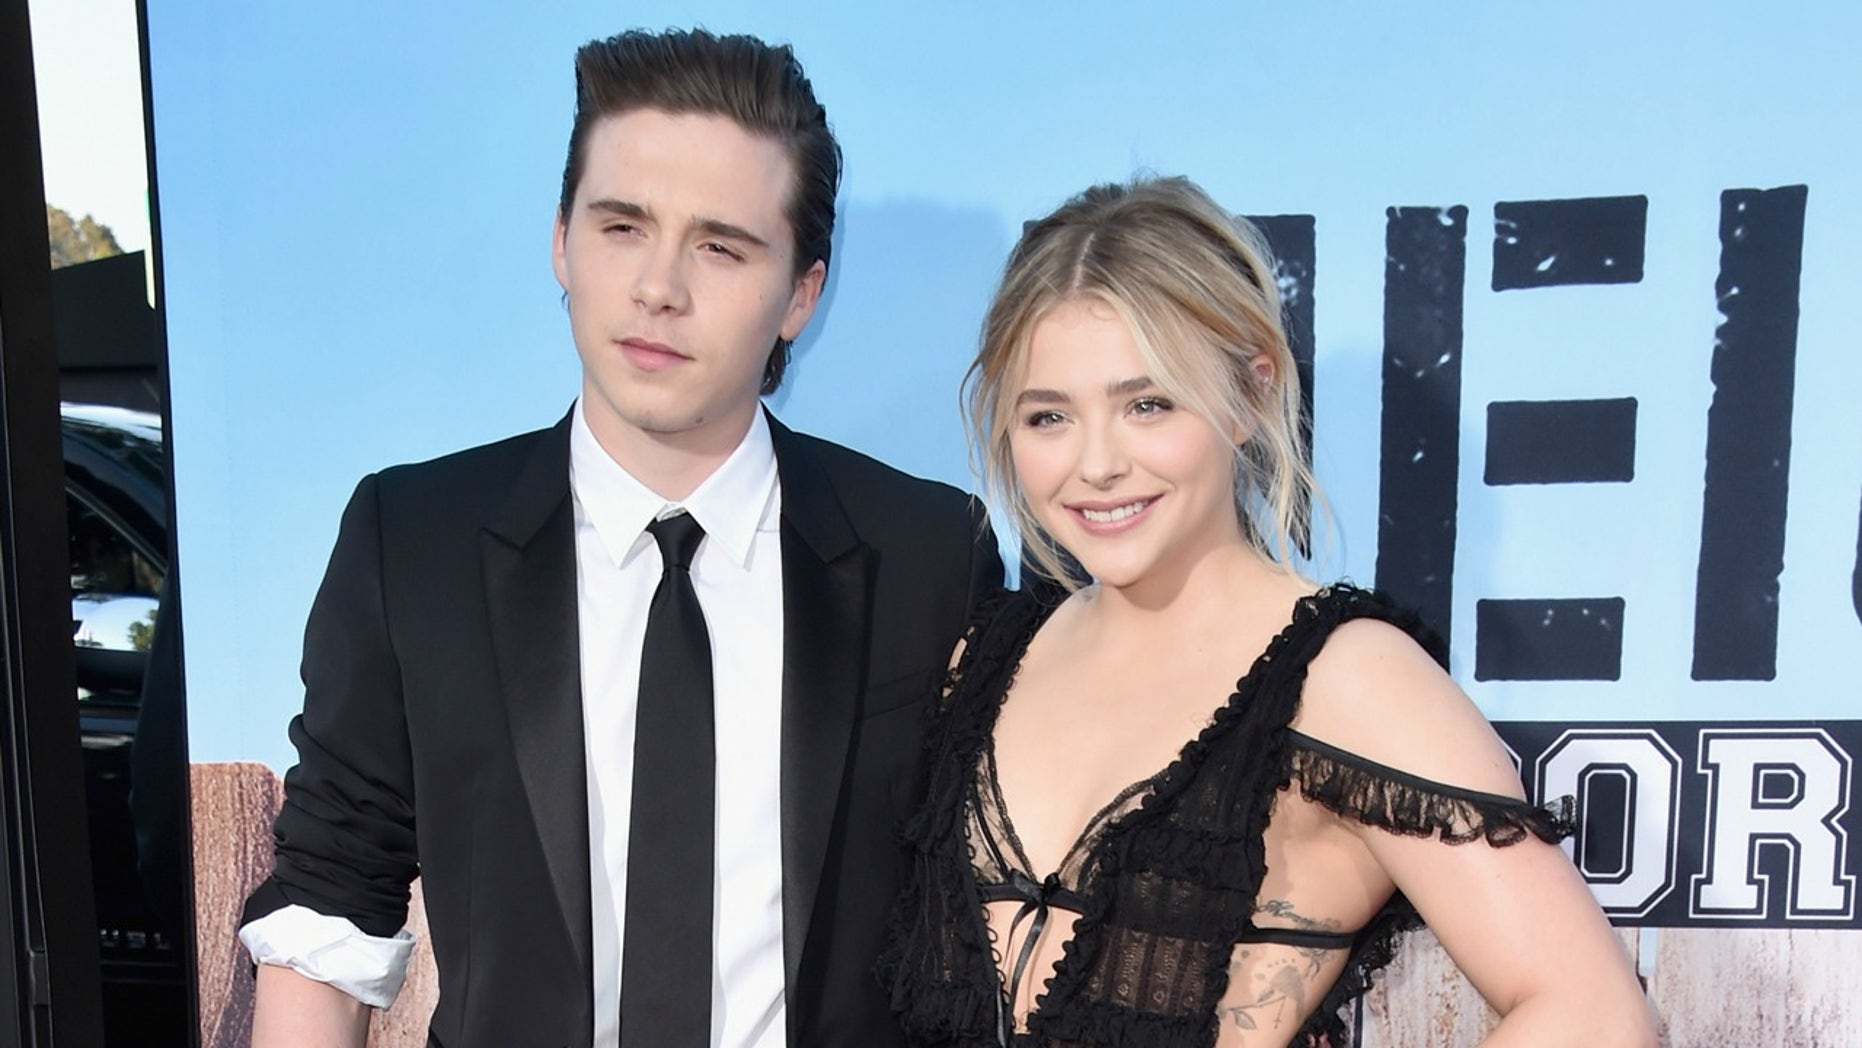 """Brooklyn Beckham (left) and actress Chloe Grace Moretz at the premiere of Universal Pictures' """"Neighbors 2: Sorority Rising."""""""